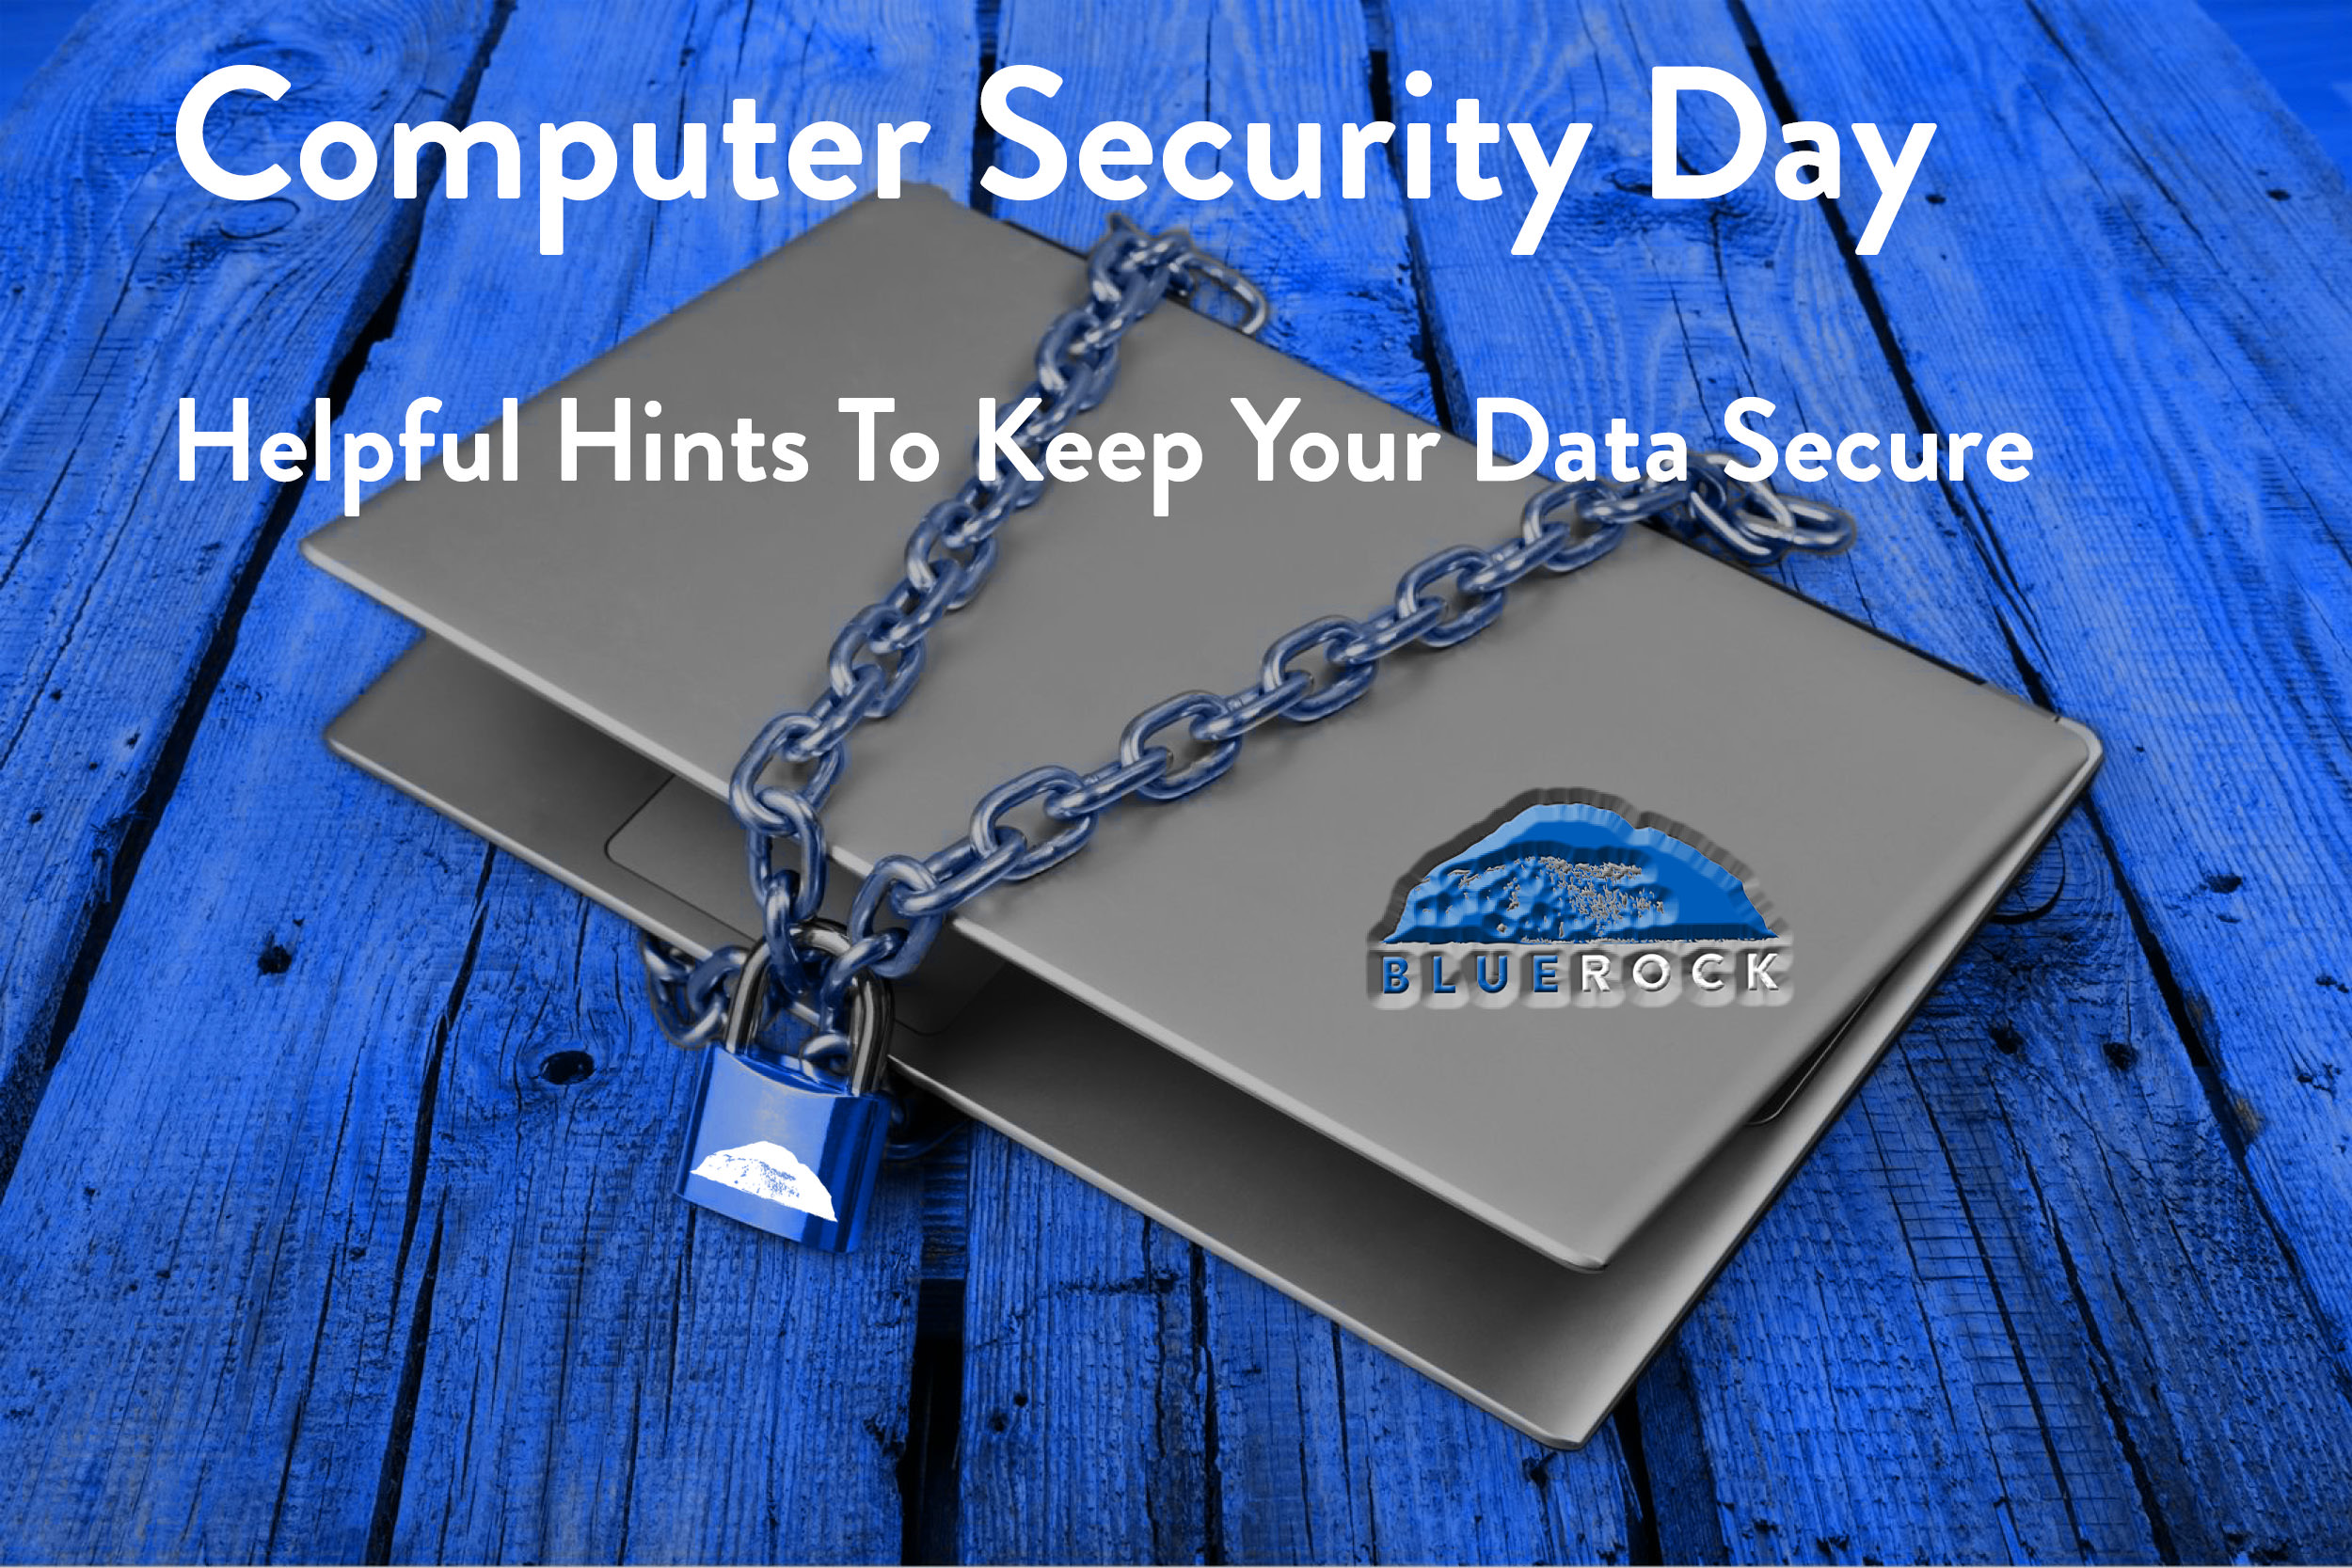 Blue Rock Computer security dayBR